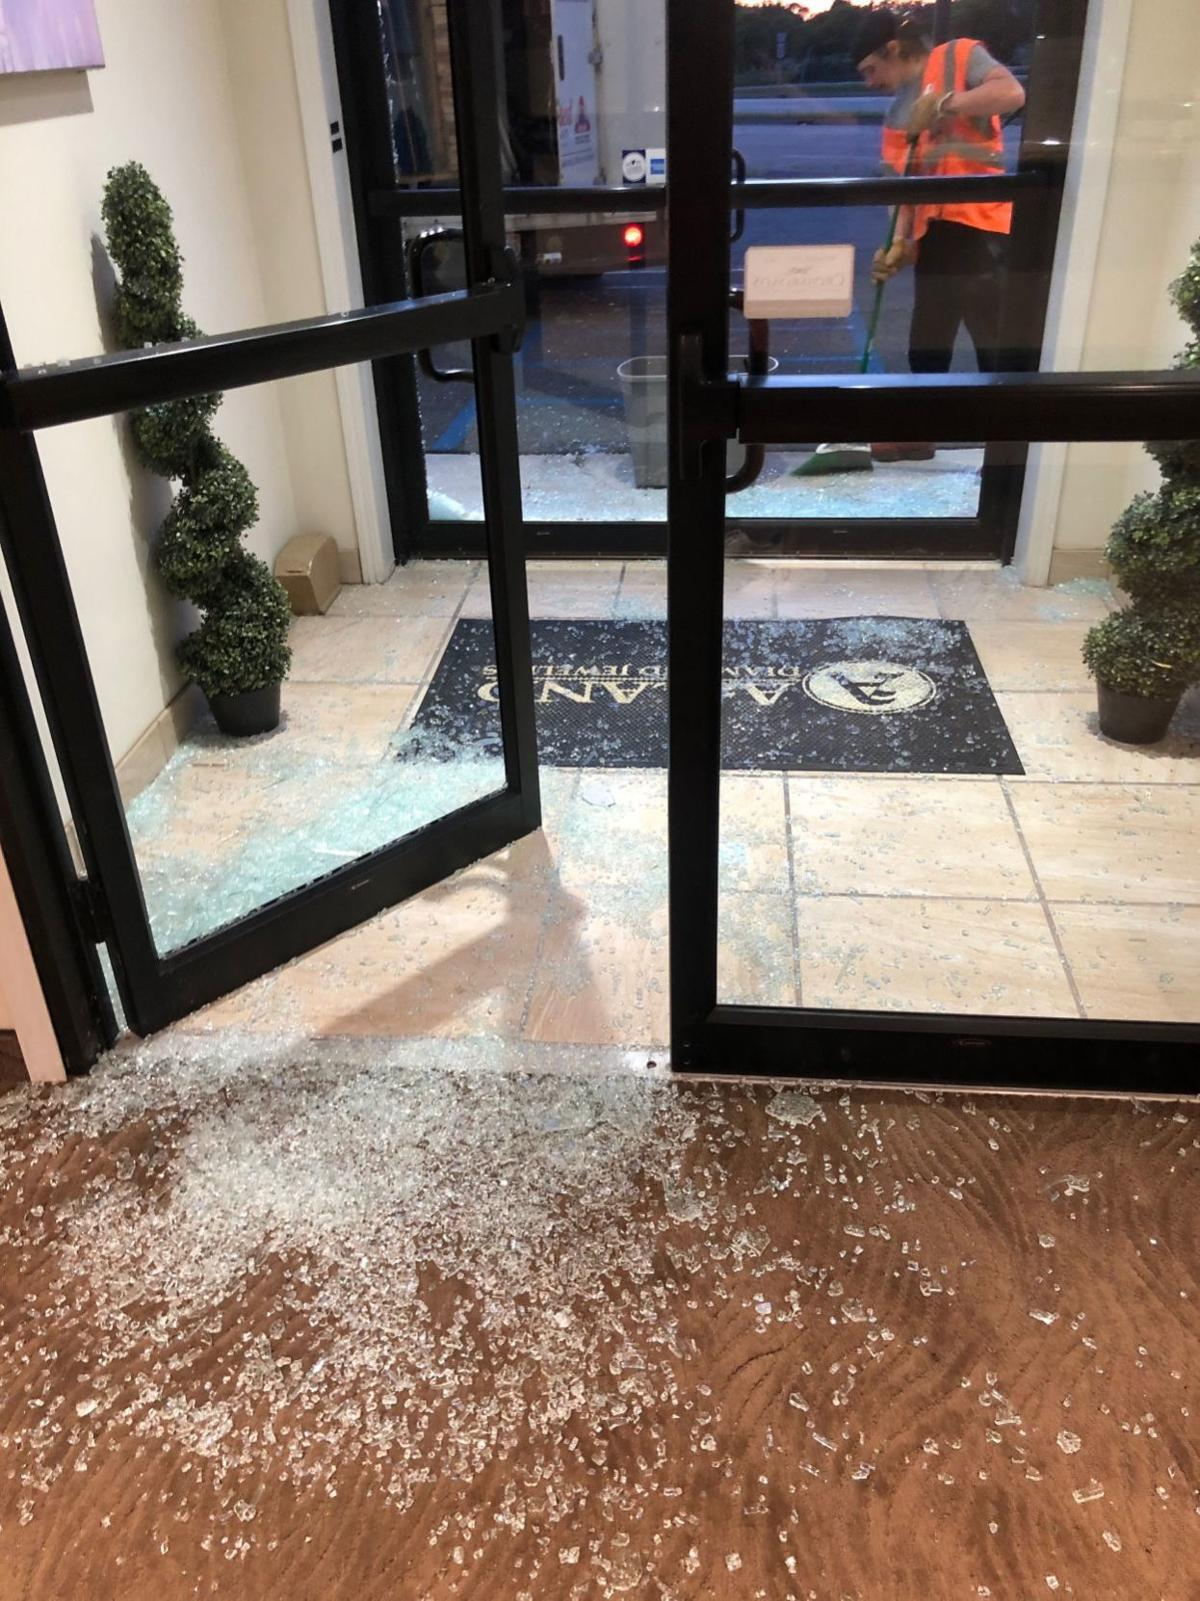 Merrillville Jewelry Store Looted Sunday As Cops Tied Up With Nearby Protests Government And Politics Nwitimes Com